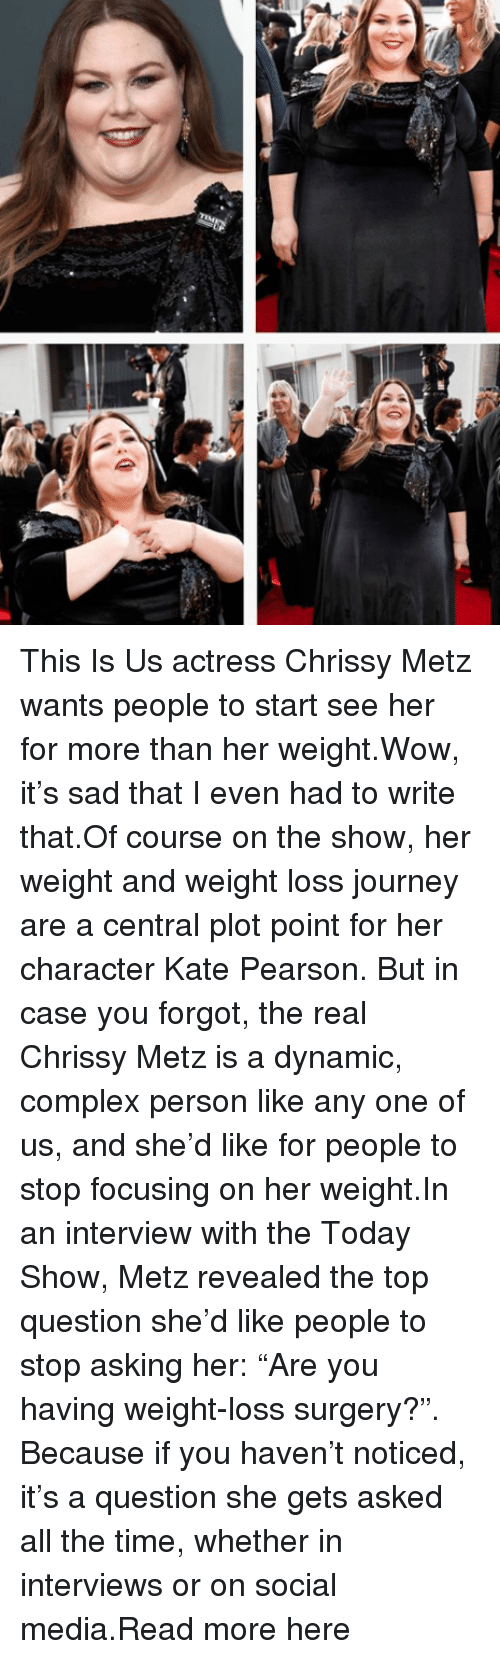 """Complex, Journey, and Social Media: This Is Us actress Chrissy Metz wants people to start see her for more than her weight.Wow, it's sad that I even had to write that.Of course on the show, her weight and weight loss journey are a central plot point for her character Kate Pearson. But in case you forgot, the real Chrissy Metz is a dynamic, complex person like any one of us, and she'd like for people to stop focusing on her weight.In an interview with the Today Show, Metz revealed the top question she'd like people to stop asking her: """"Are you having weight-loss surgery?"""". Because if you haven't noticed, it's a question she gets asked all the time, whether in interviews or on social media.Read more here"""